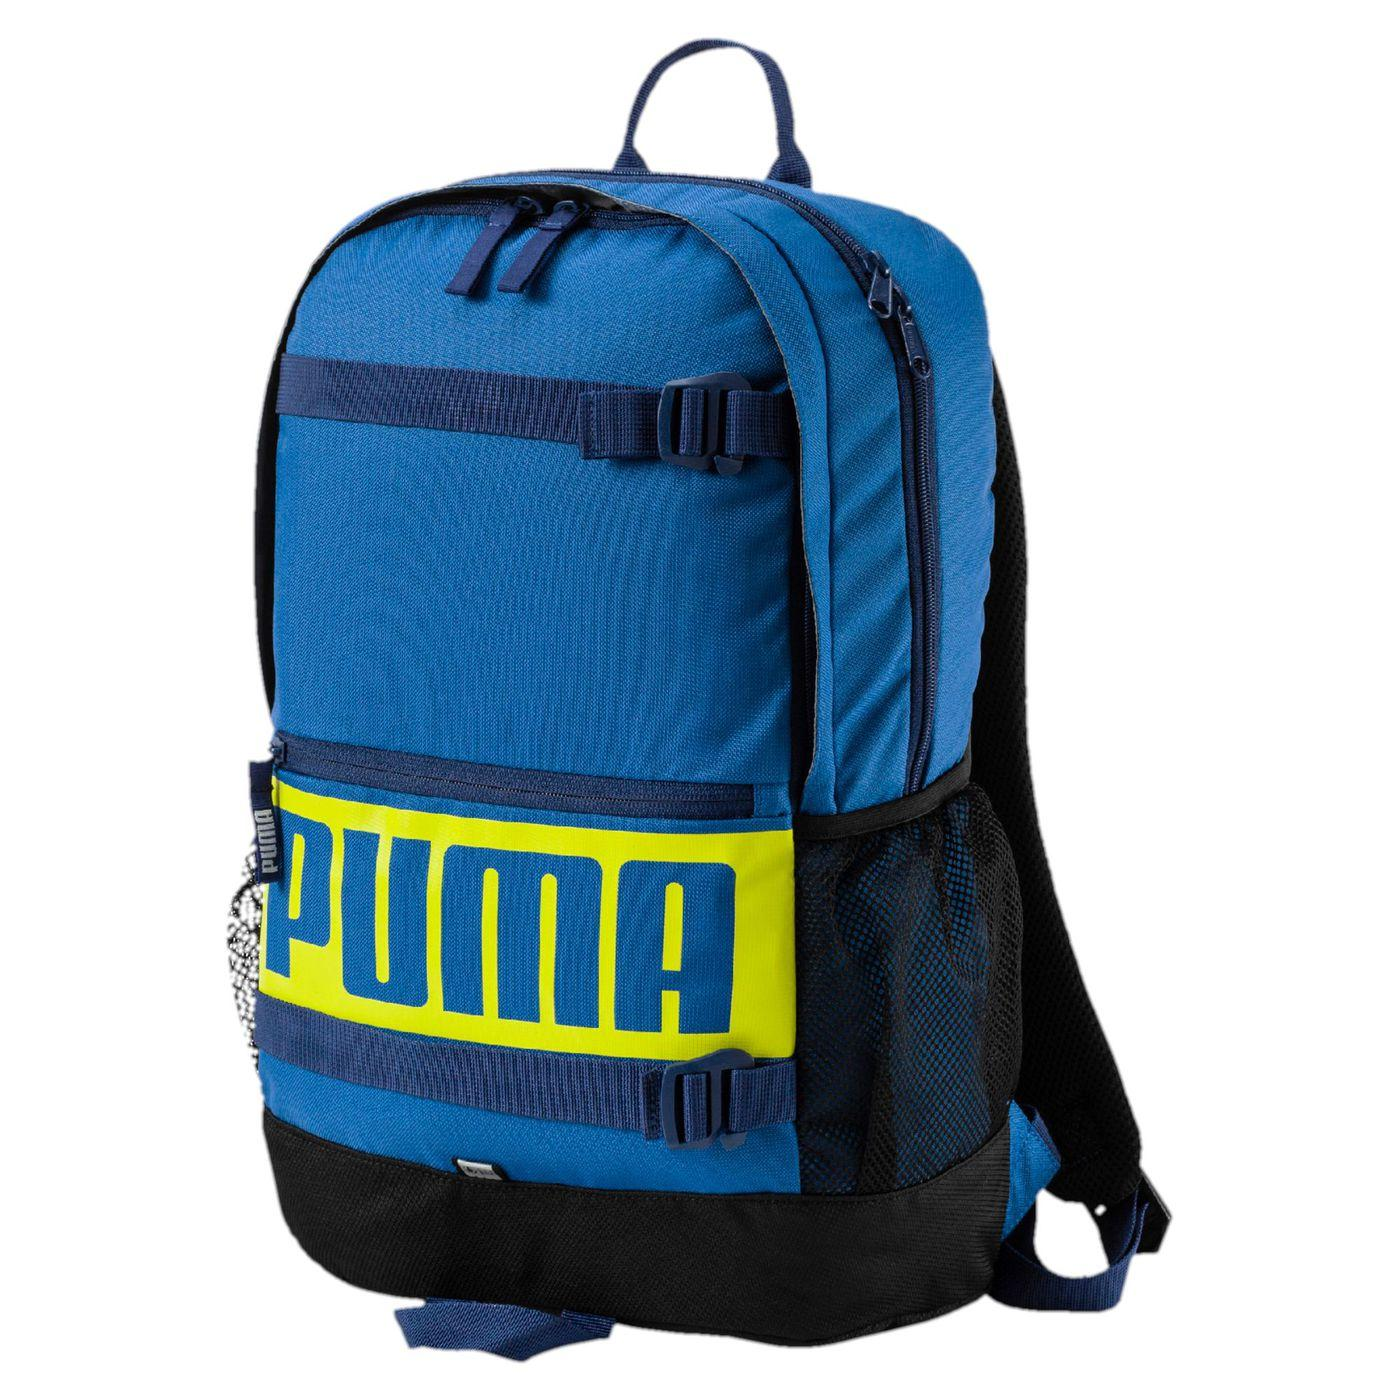 Sports Bags for Men for sale - Mens Sports Bags online brands ... fd192f84b7